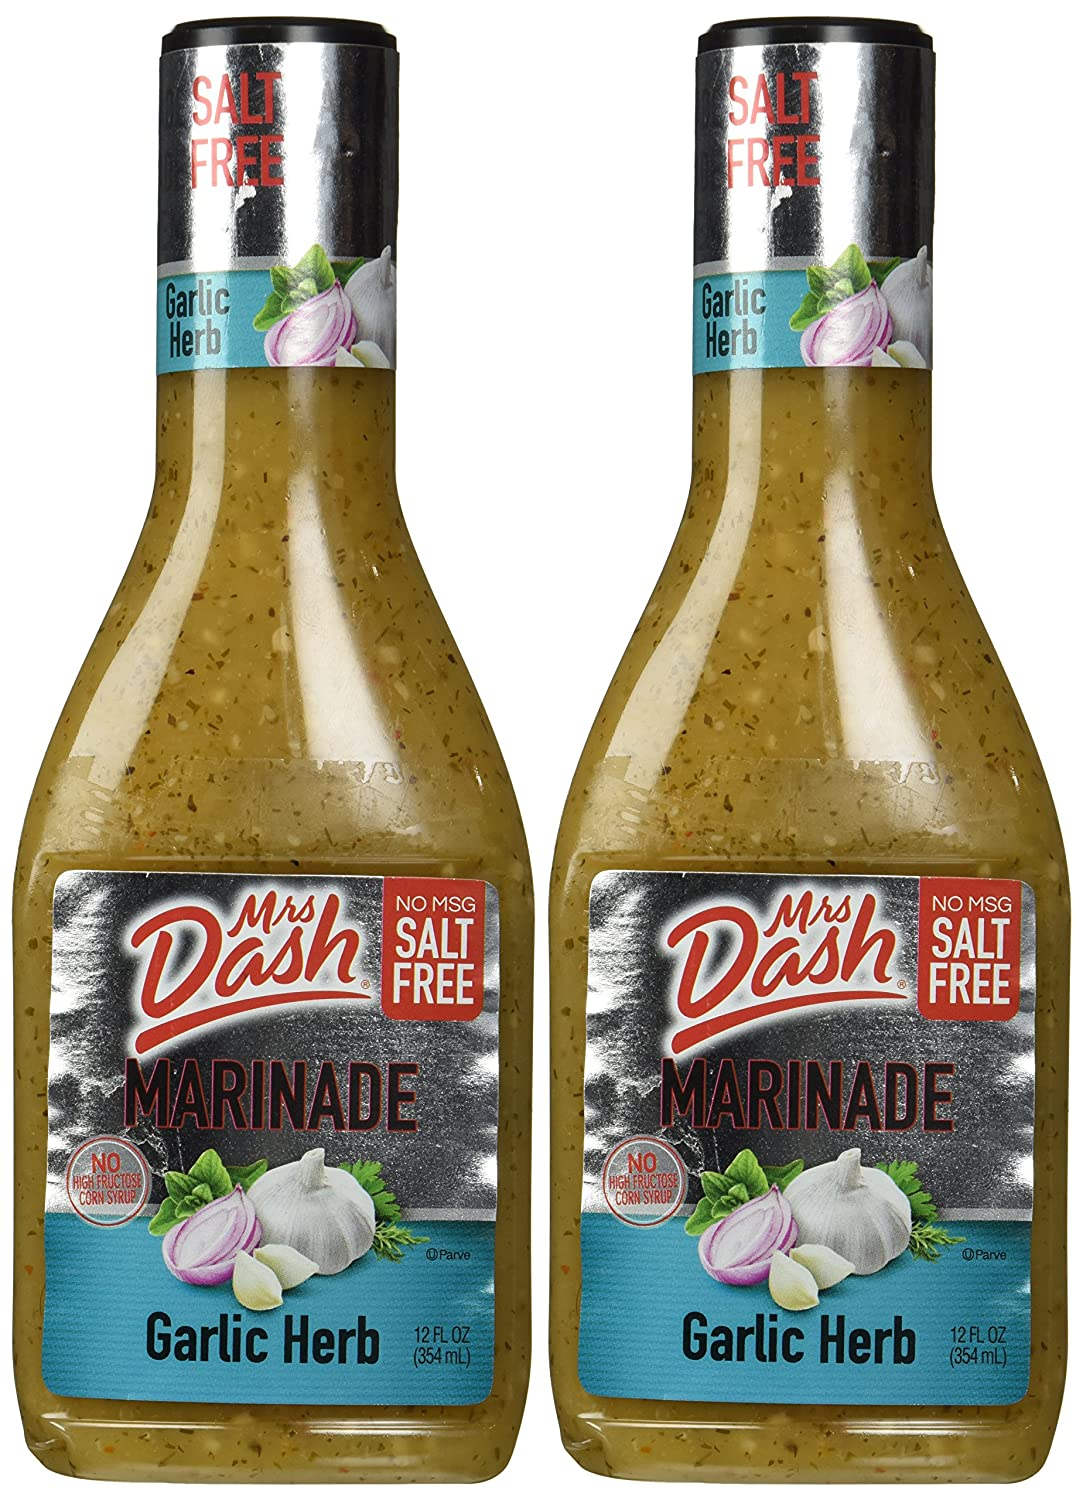 Mrs. Dash Marinade Salt-free Garlic Herb, 12 Oz (Pack of 2)